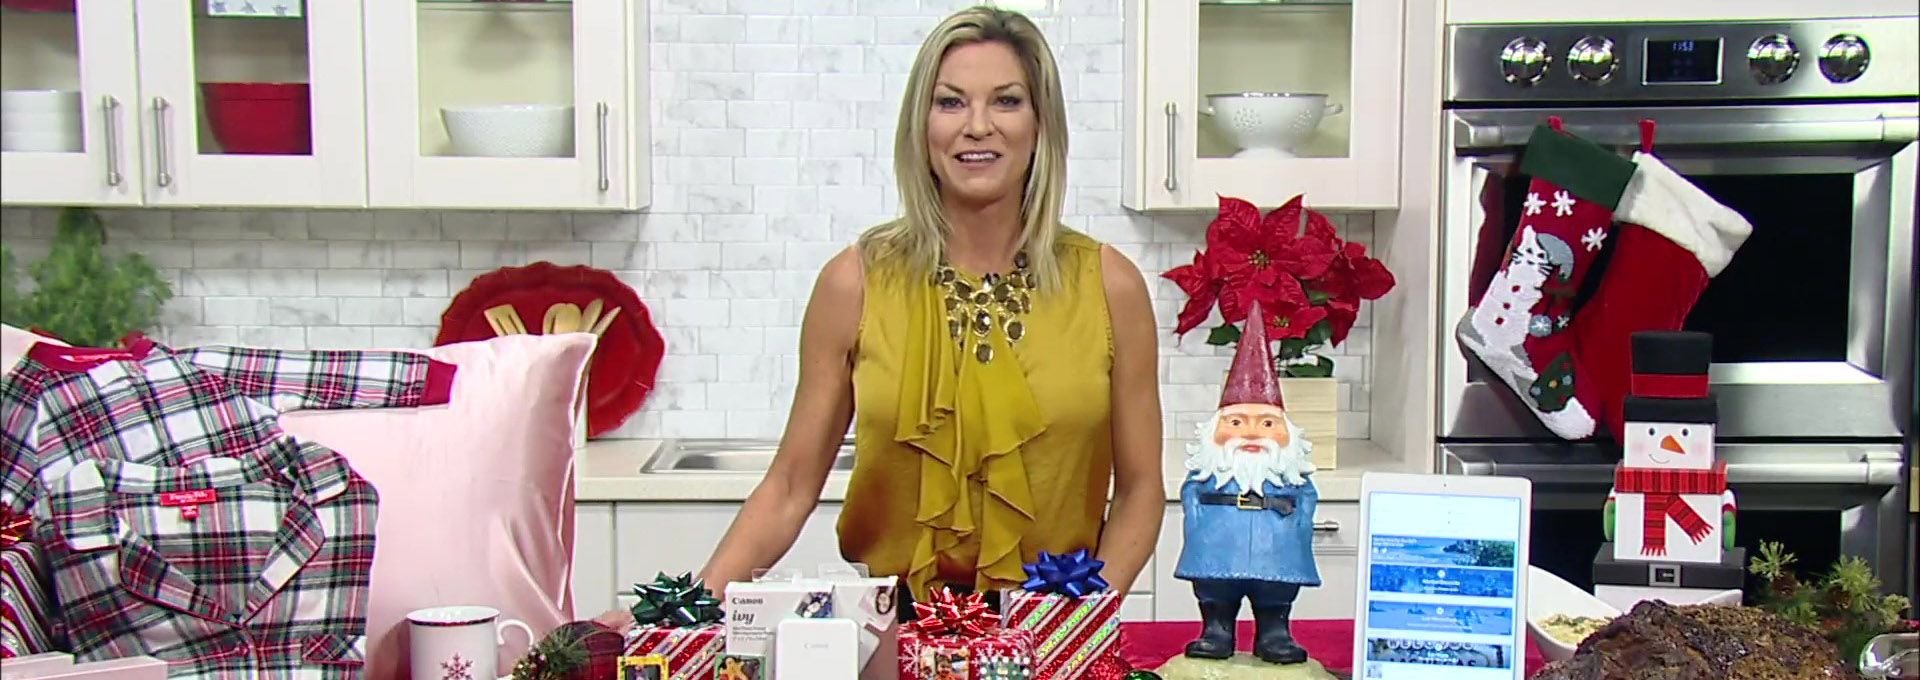 Lifestyle Expert Shares Her Last-Minute Tips for the Holidays